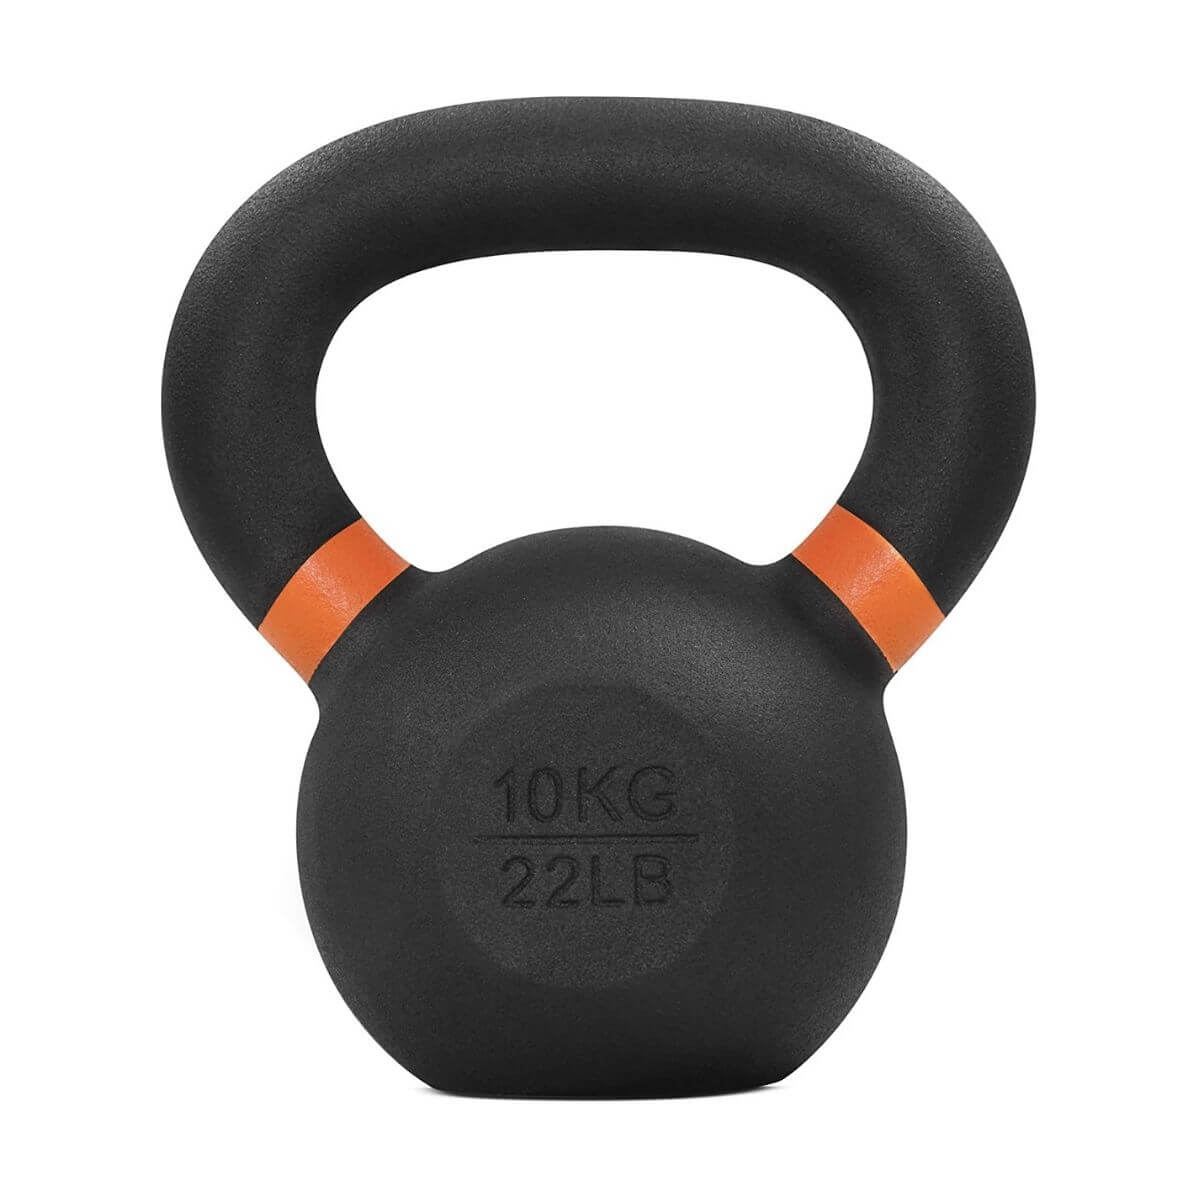 Black cast iron kettlebell with orange rings.